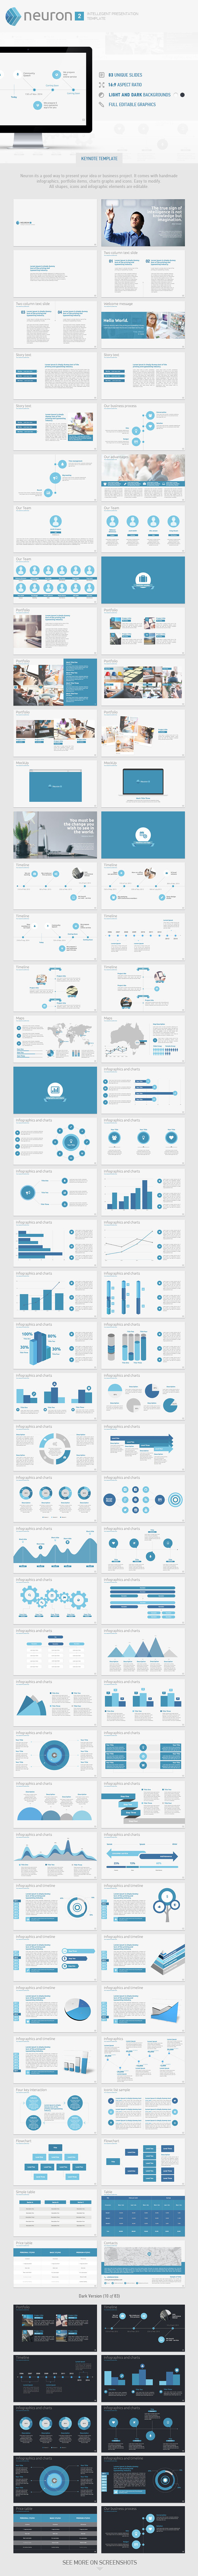 GraphicRiver Neuron Volume 2 Keynote Presentation Template 9819670